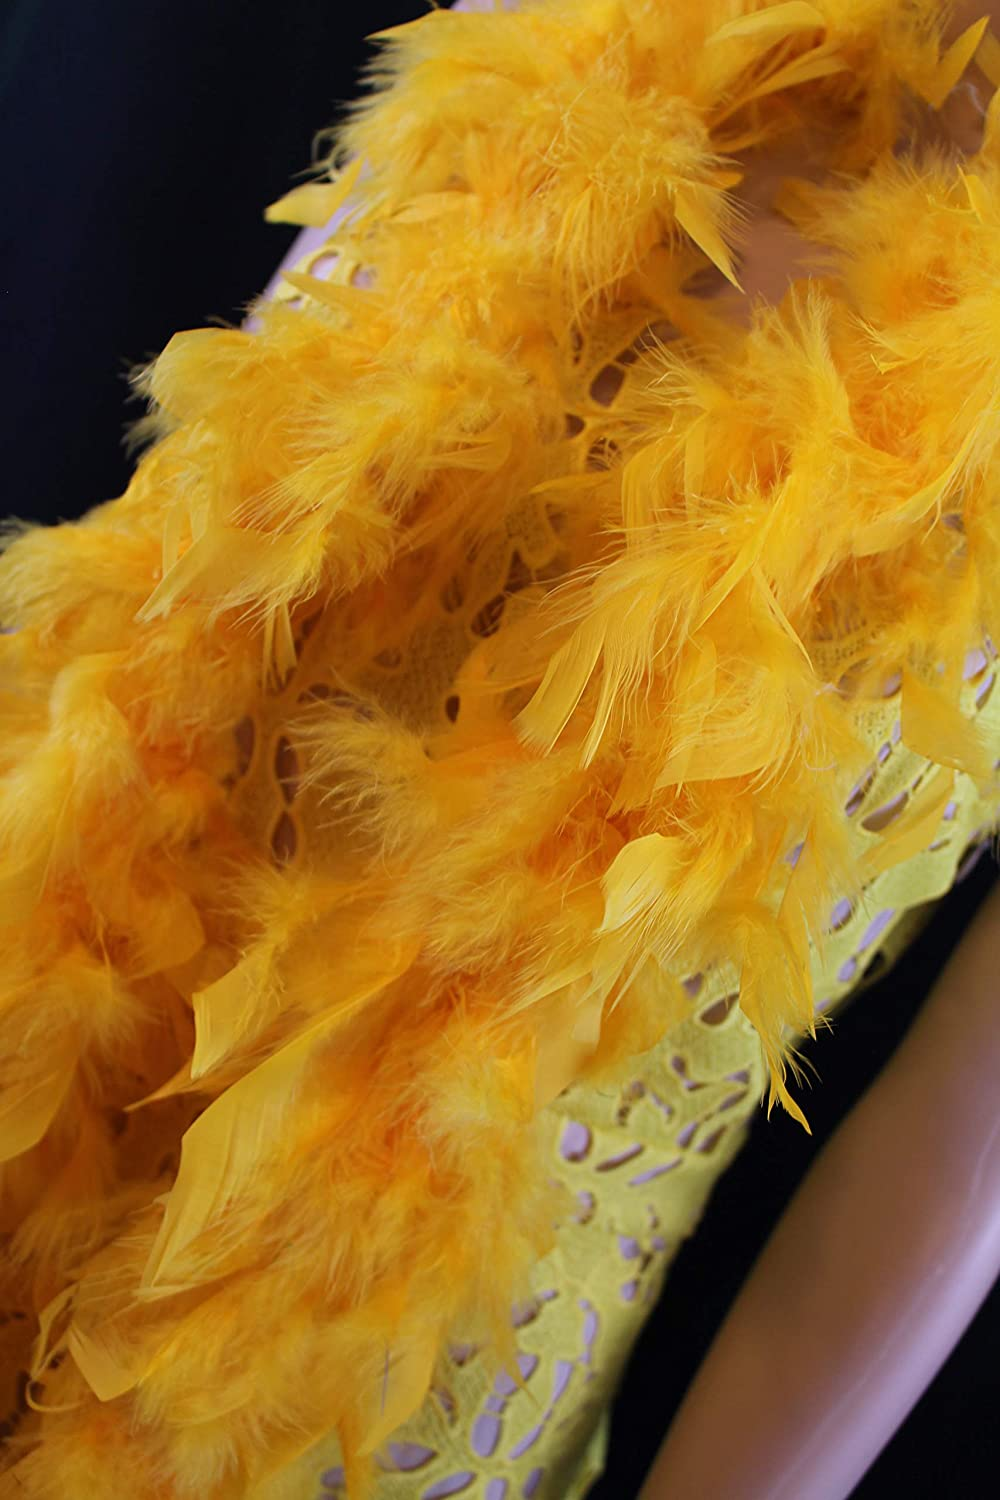 Soft Turkey Chandelle Feather Boa Over 18 Color 40 Gram 72 Long Dancing Wedding Crafting Party Dress Up Halloween Costume Decoration Turquoise